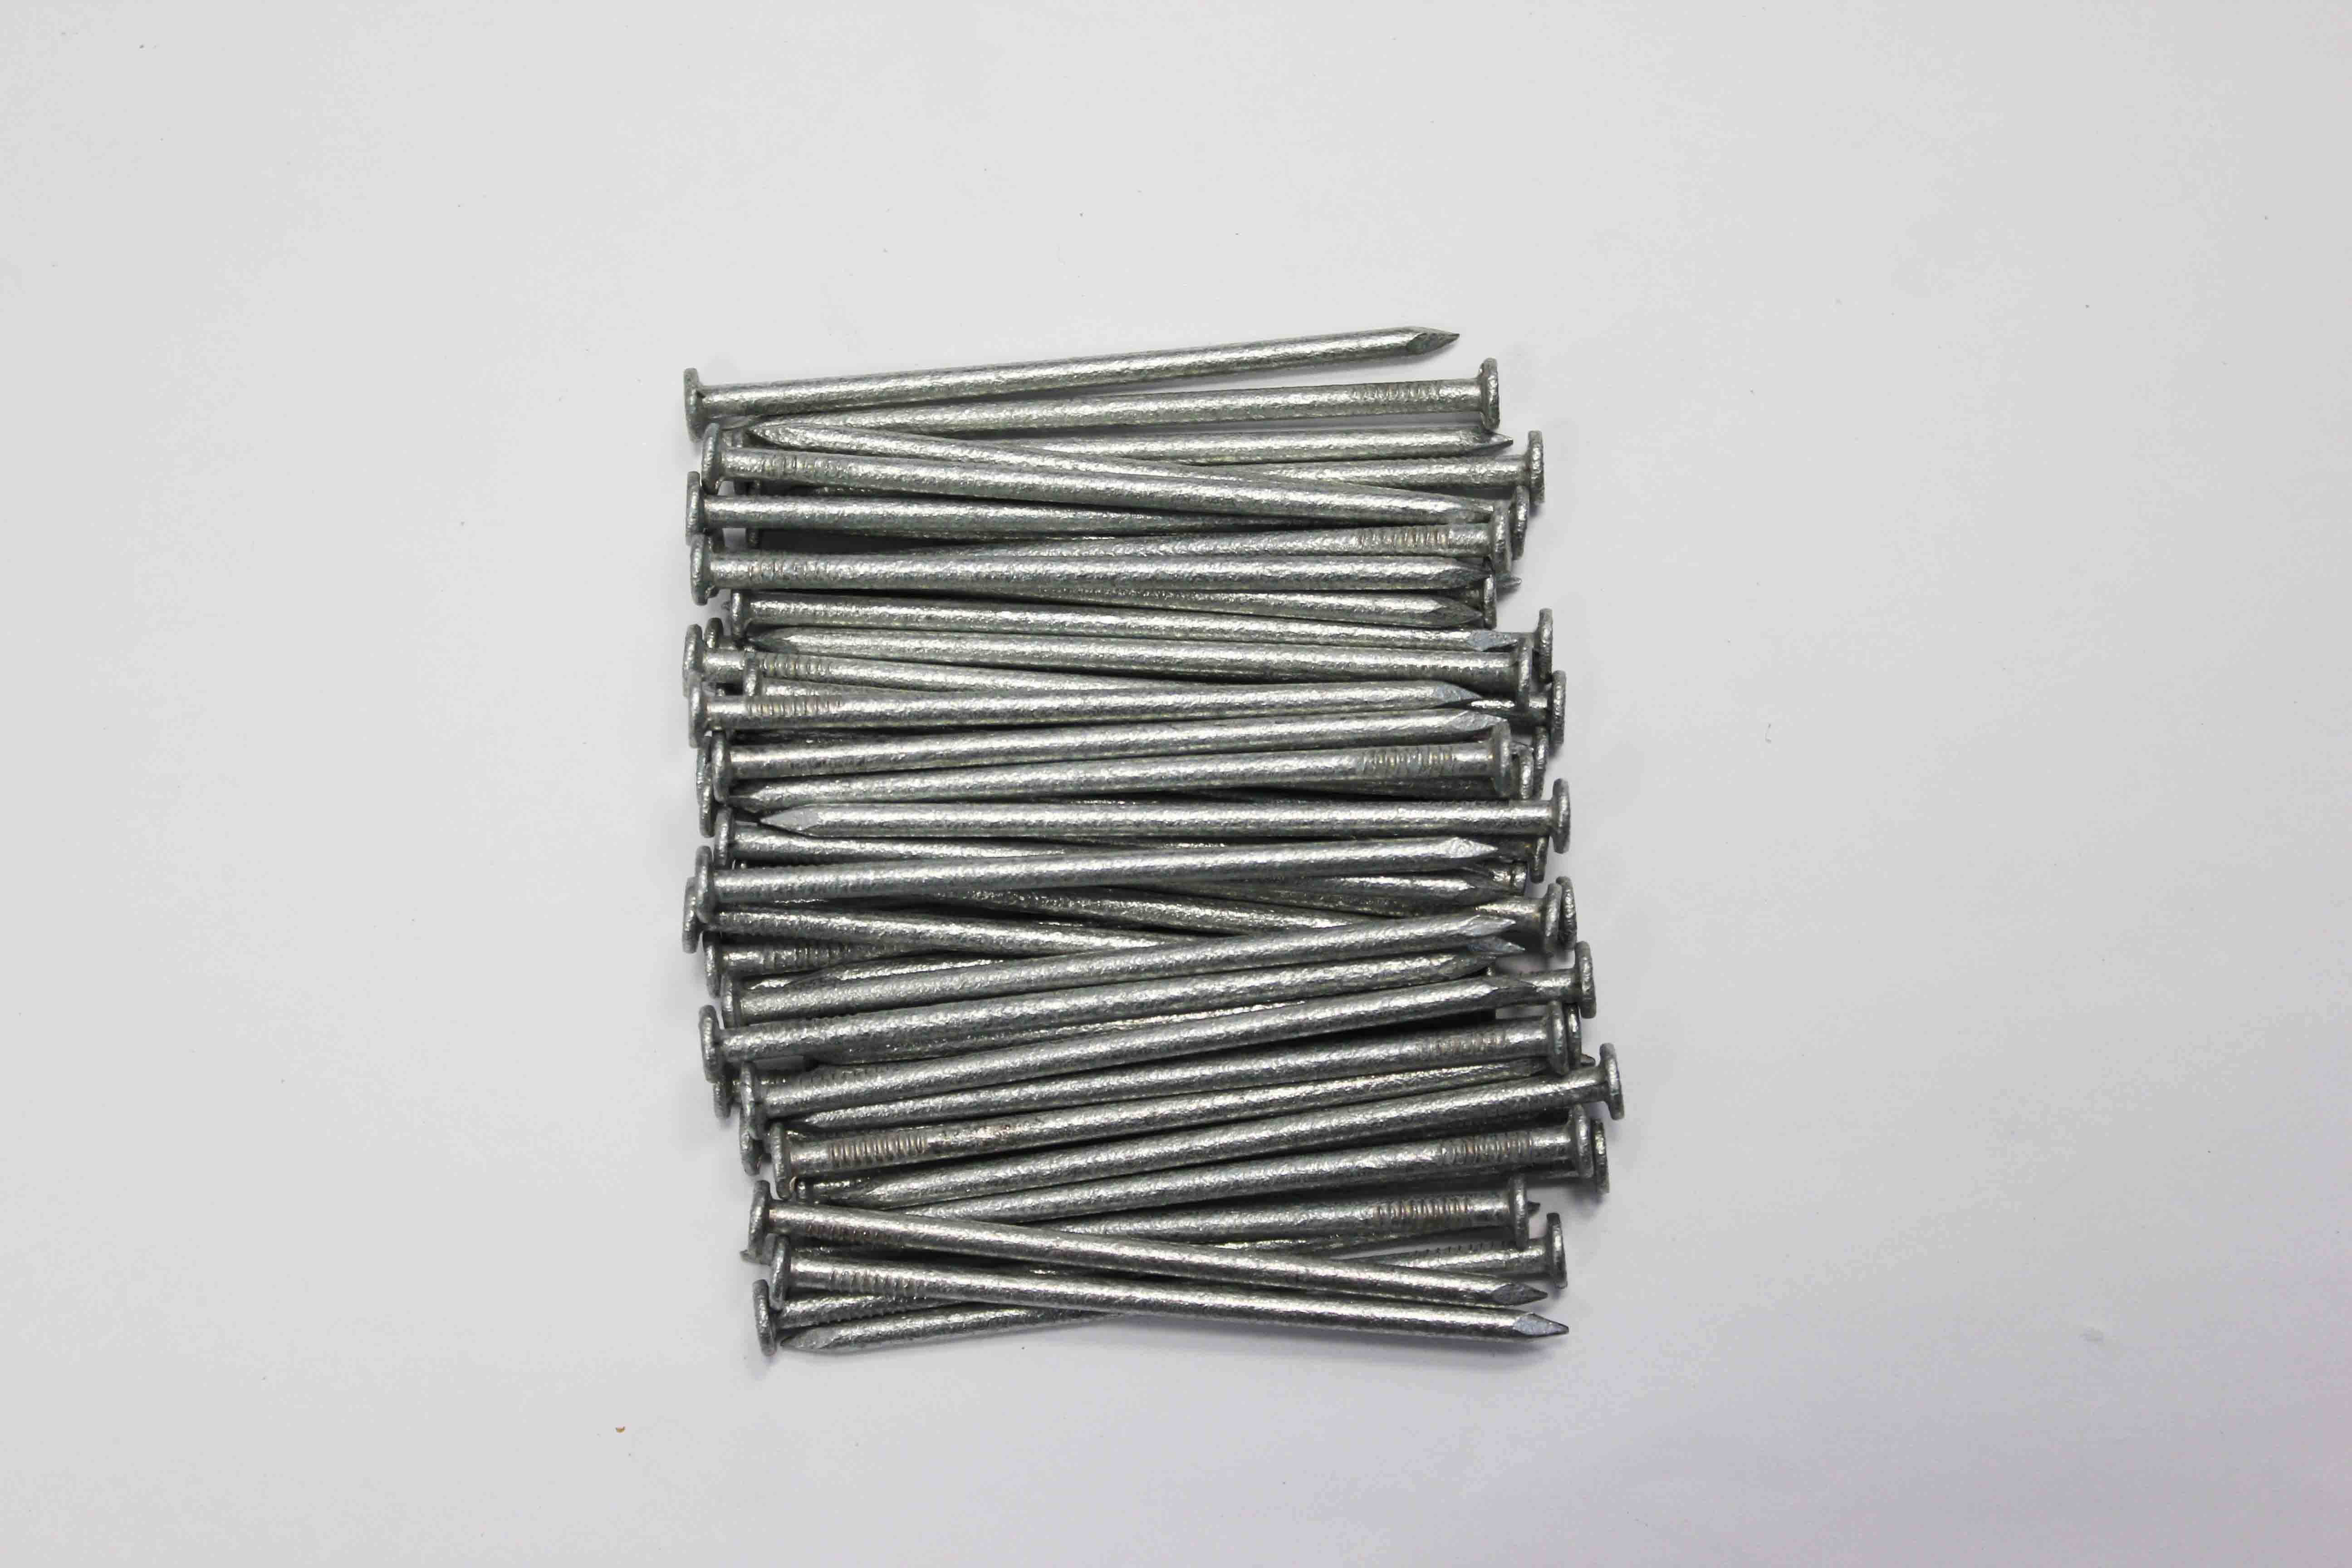 Best Quality Metal Round Wire Nails 25mm 38mm 50mm 65mm 75mm 100mm 125mm 150mm